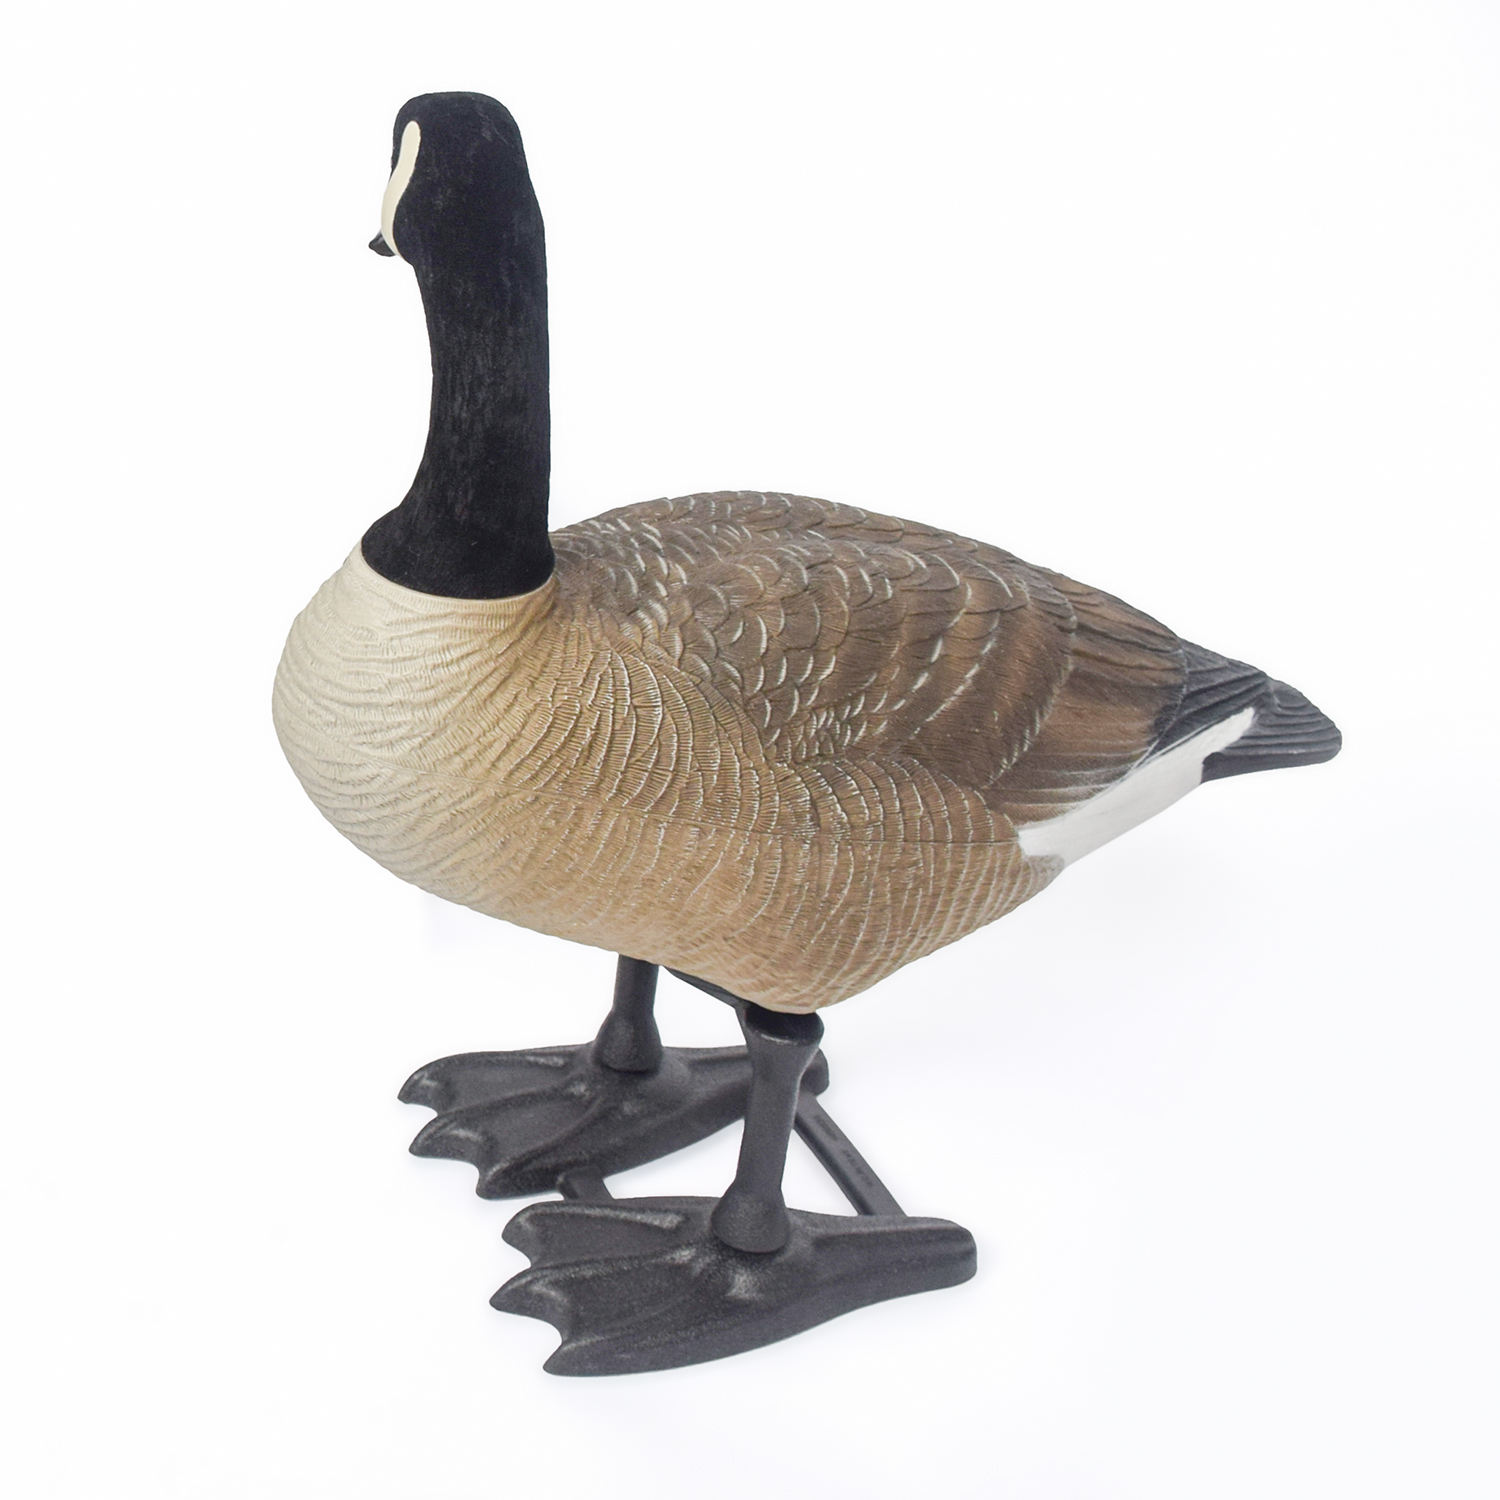 Hot Sales 6-pack/12-pack Unparalleled Outdoors Standard 3D Lifelike Goose Decoy with Multiple Style Heads